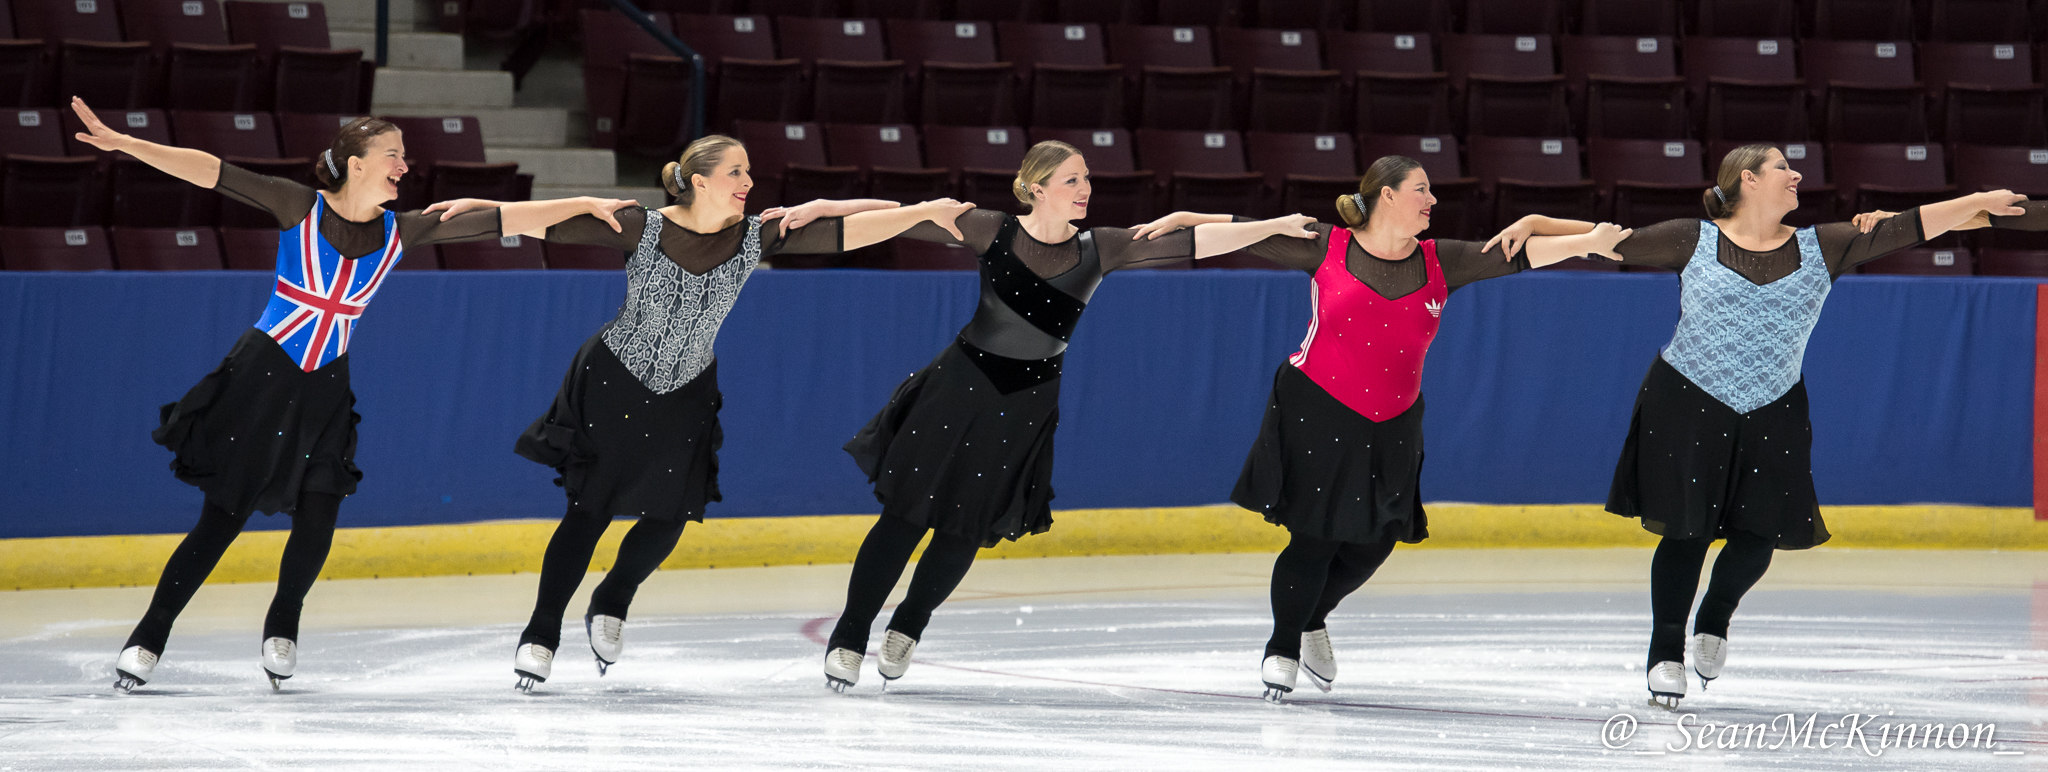 Mid Ice Crisis Adult2016 Spice Girls